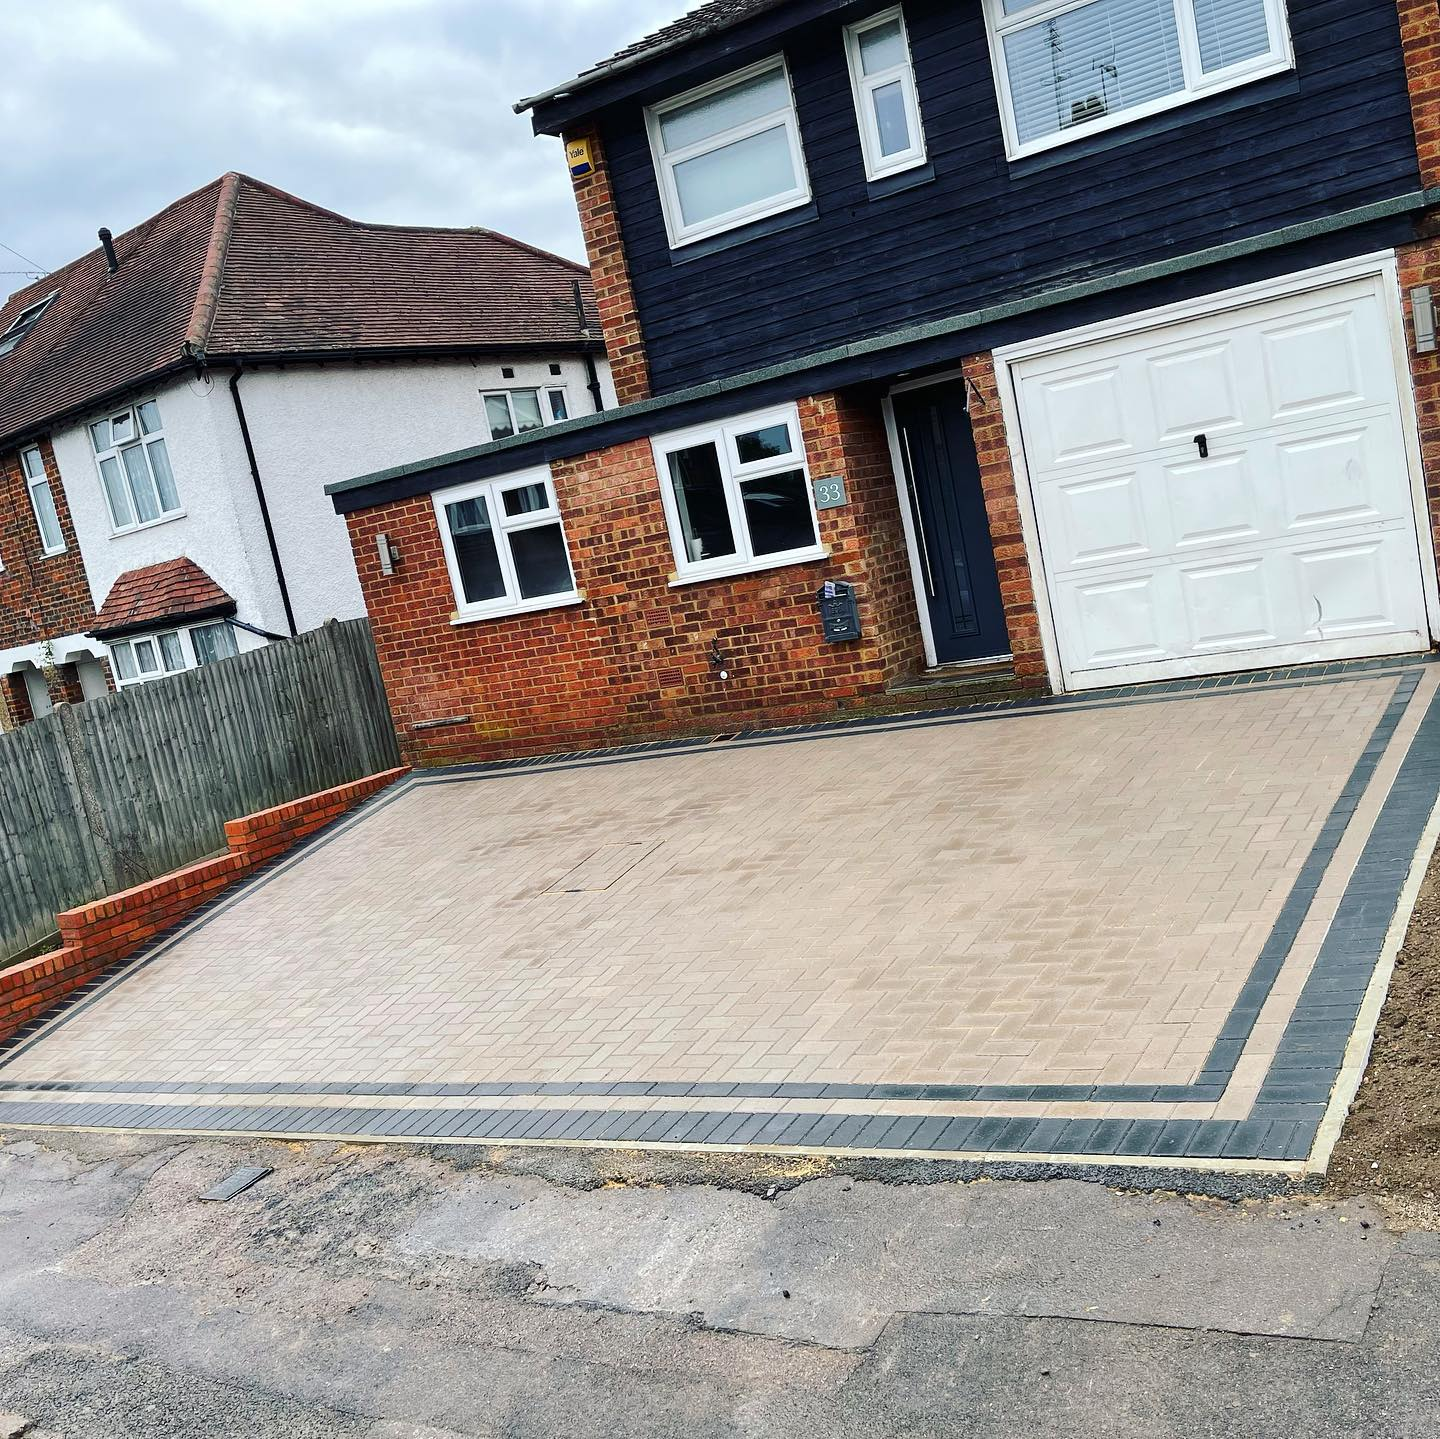 Imp[rove your home with a new patio in Hemel Hempstead